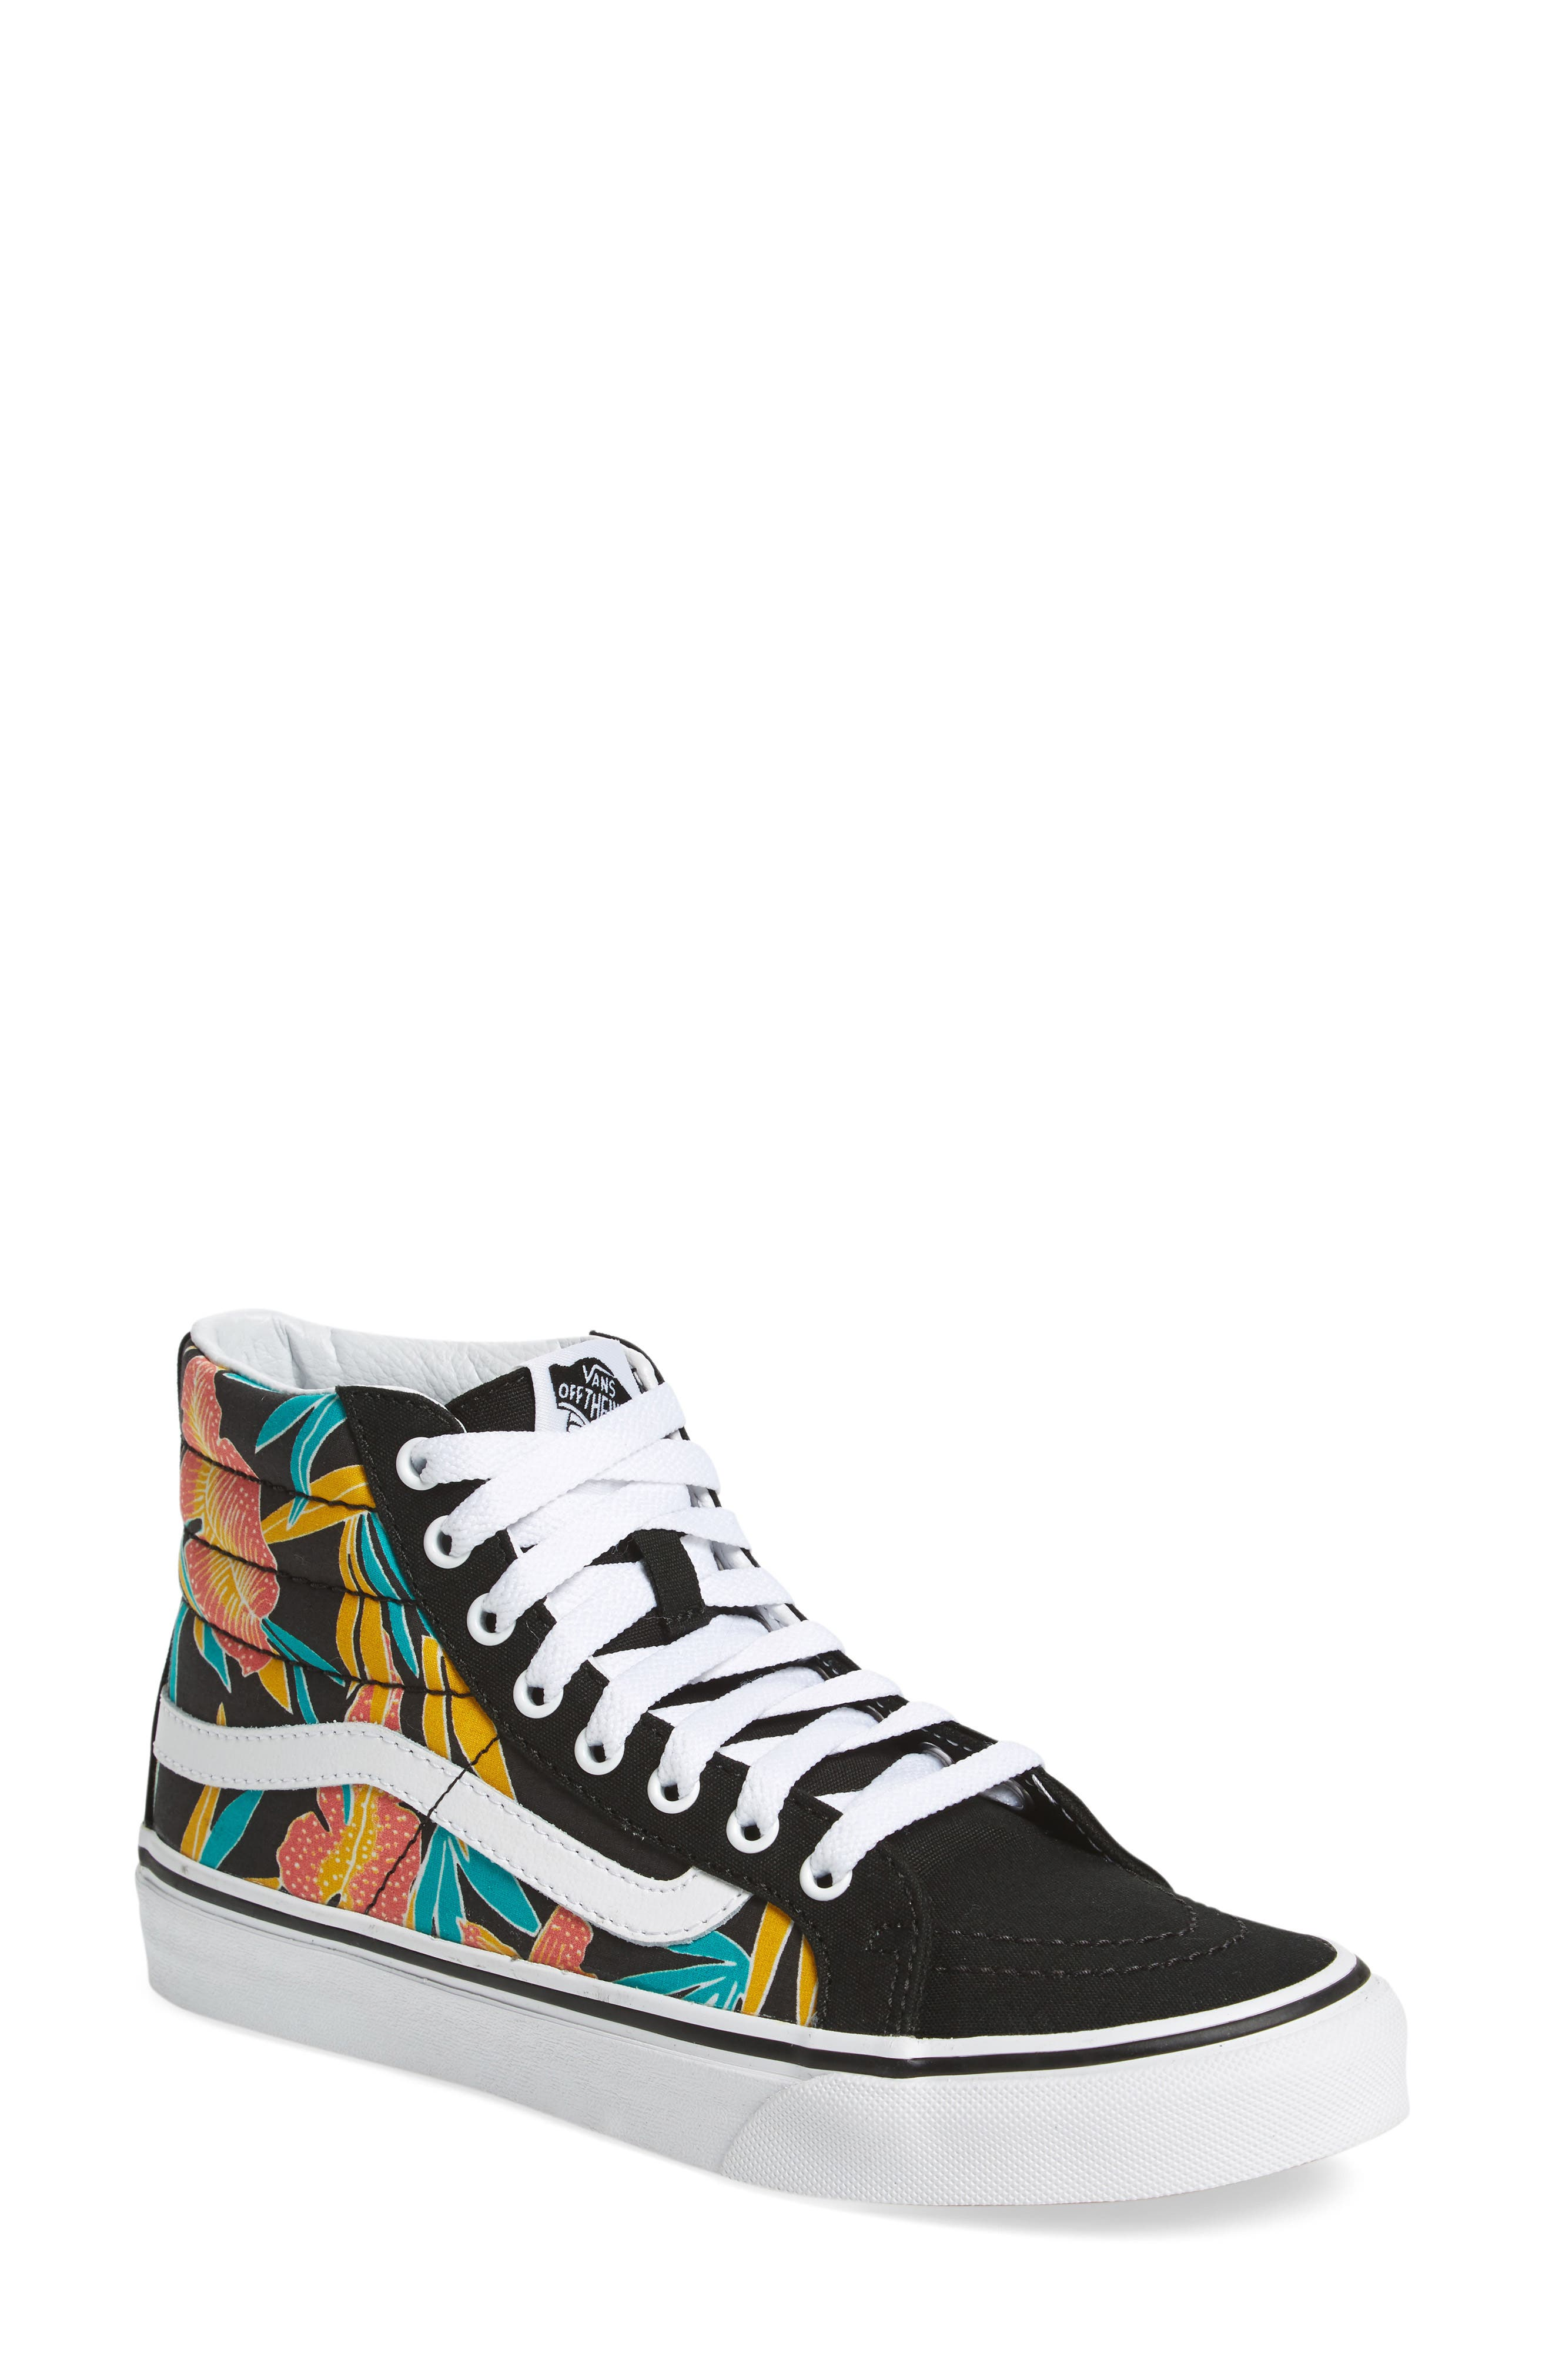 Main Image - Vans Sk8-Hi Slim High Top Sneaker (Women)